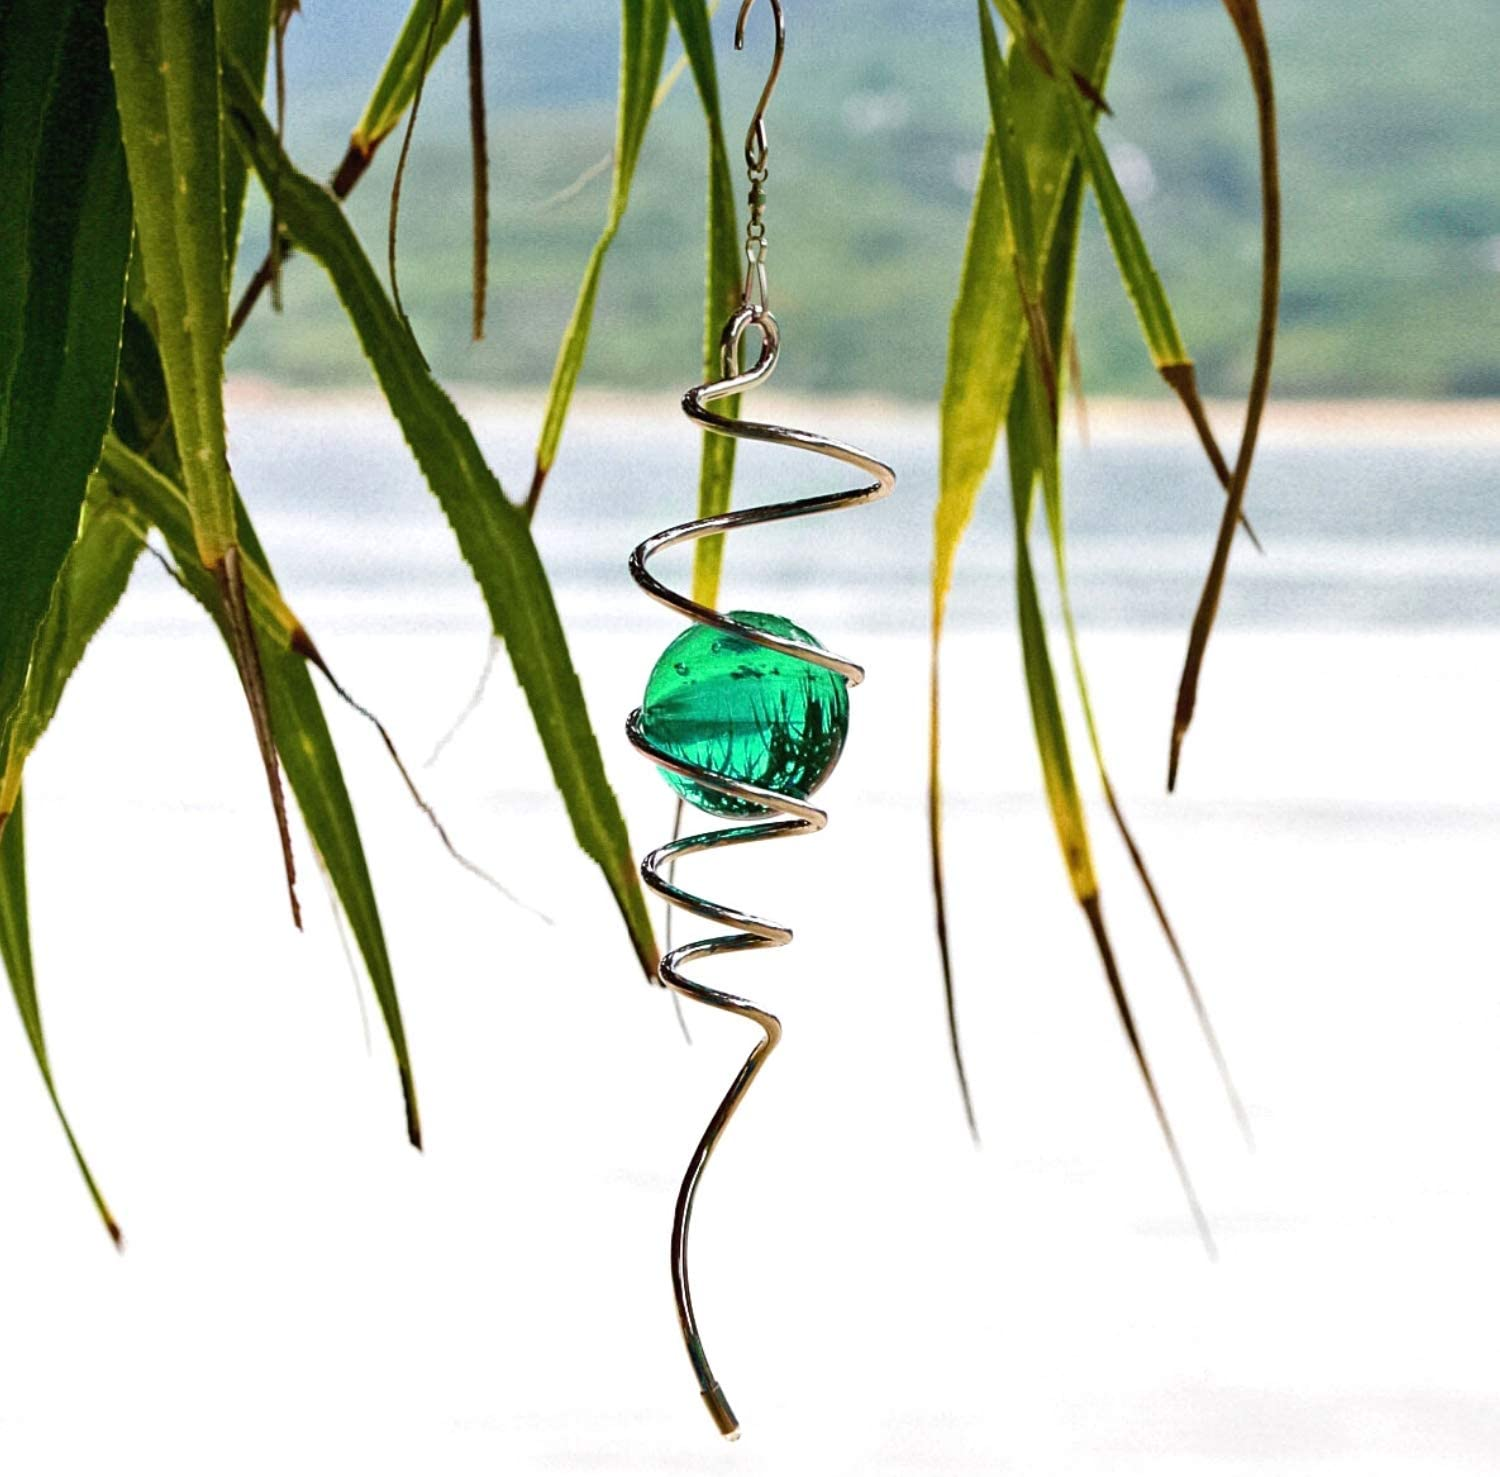 Art Jardin Wind Spinner Spiral Tail - Green Glass Helix Spiral Kinetic Ball for Hanging Wind Spinners